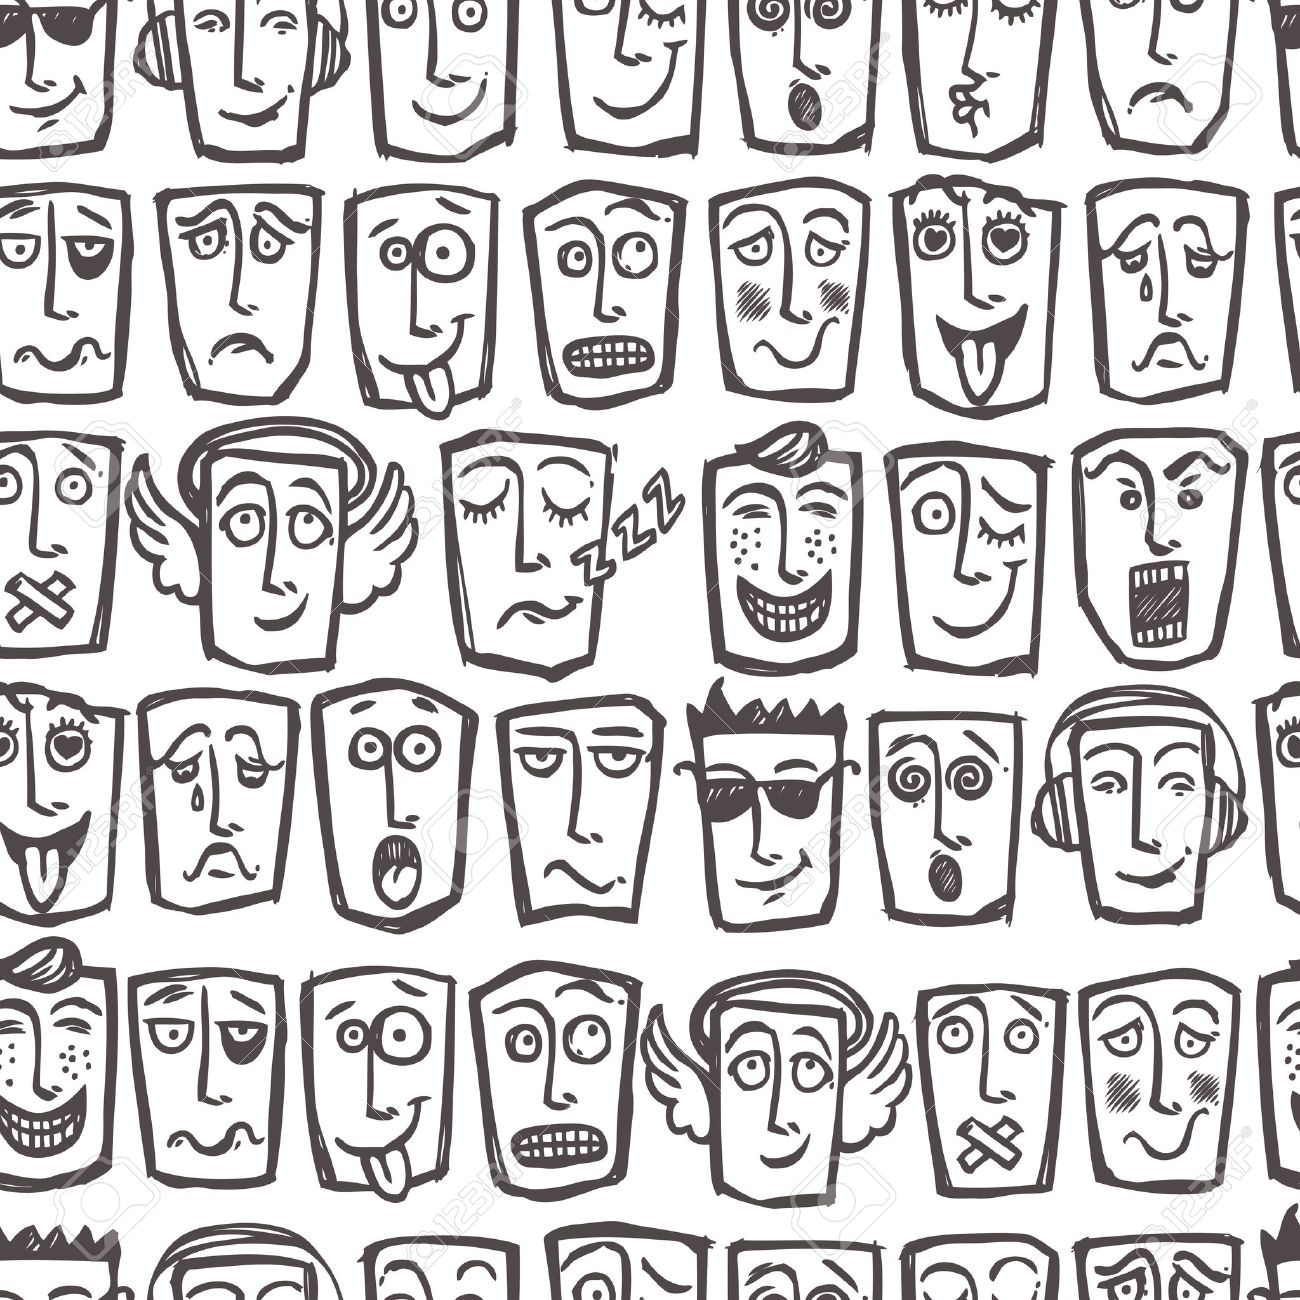 Sketch emoticons man face expressions and character seamless pattern vector illustration stock vector 32133057